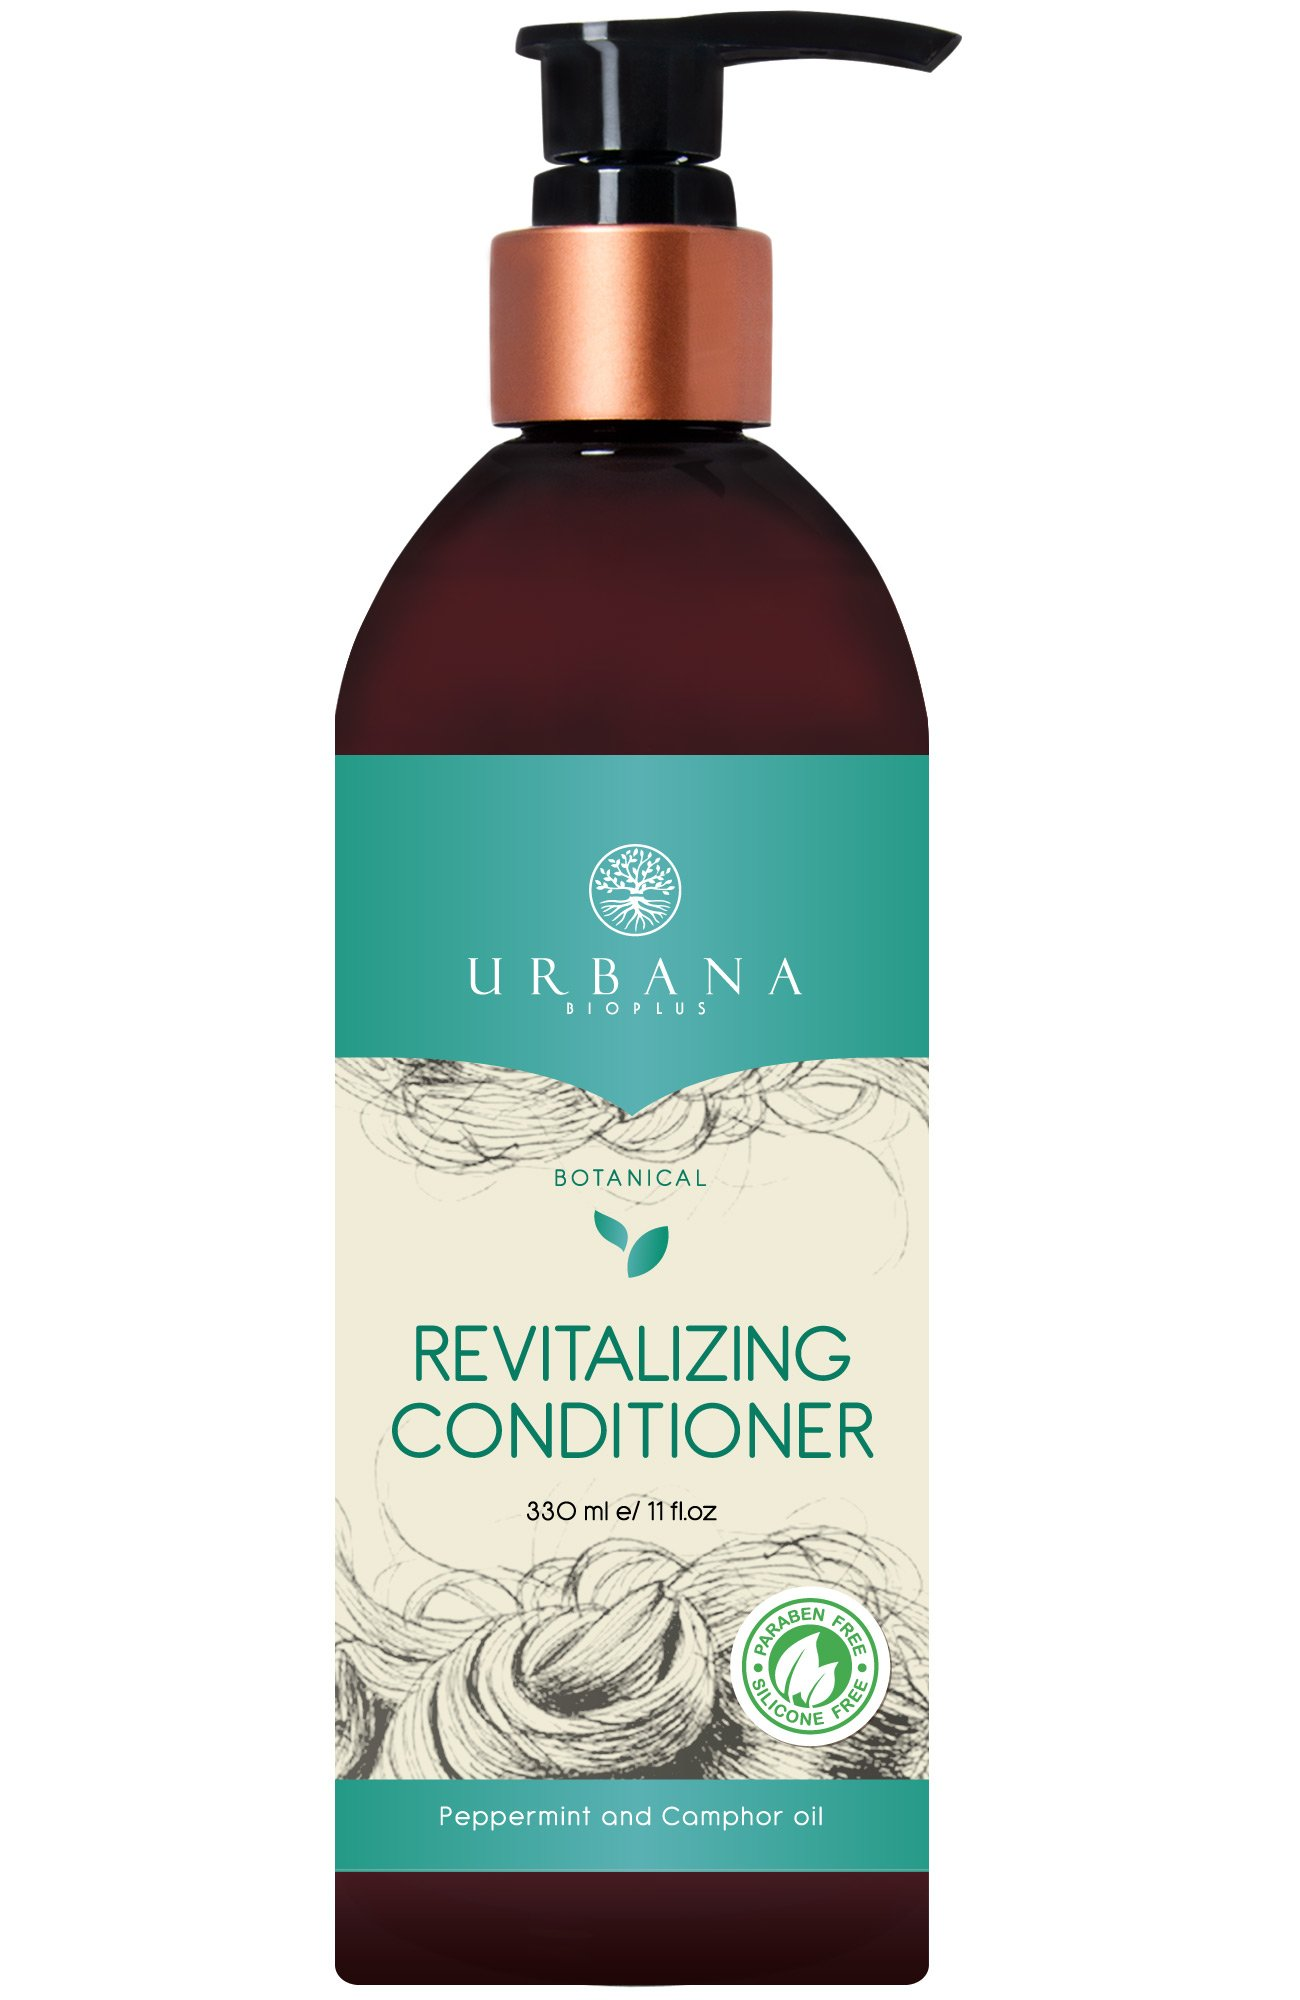 URBANA BIOPLUS Botanical Revitalizing Conditioner, Sulfate Paraben Silicon Free Daily Natural Hair Care Healthy Smooth Mask Shine Hydrating Nourishing Repair Damaged Beauty Women, 330 ml / 11 fl oz